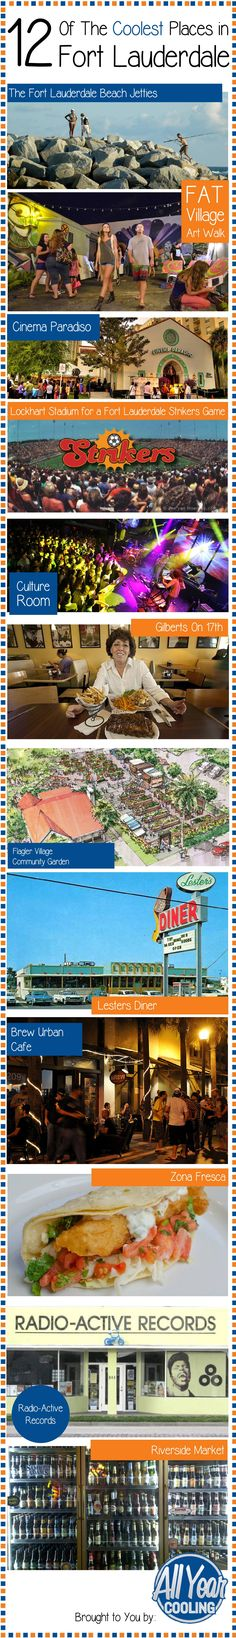 12 Coolest Spots In Fort Lauderdale [Infographic] #broward #southflorida #fortlauderdale